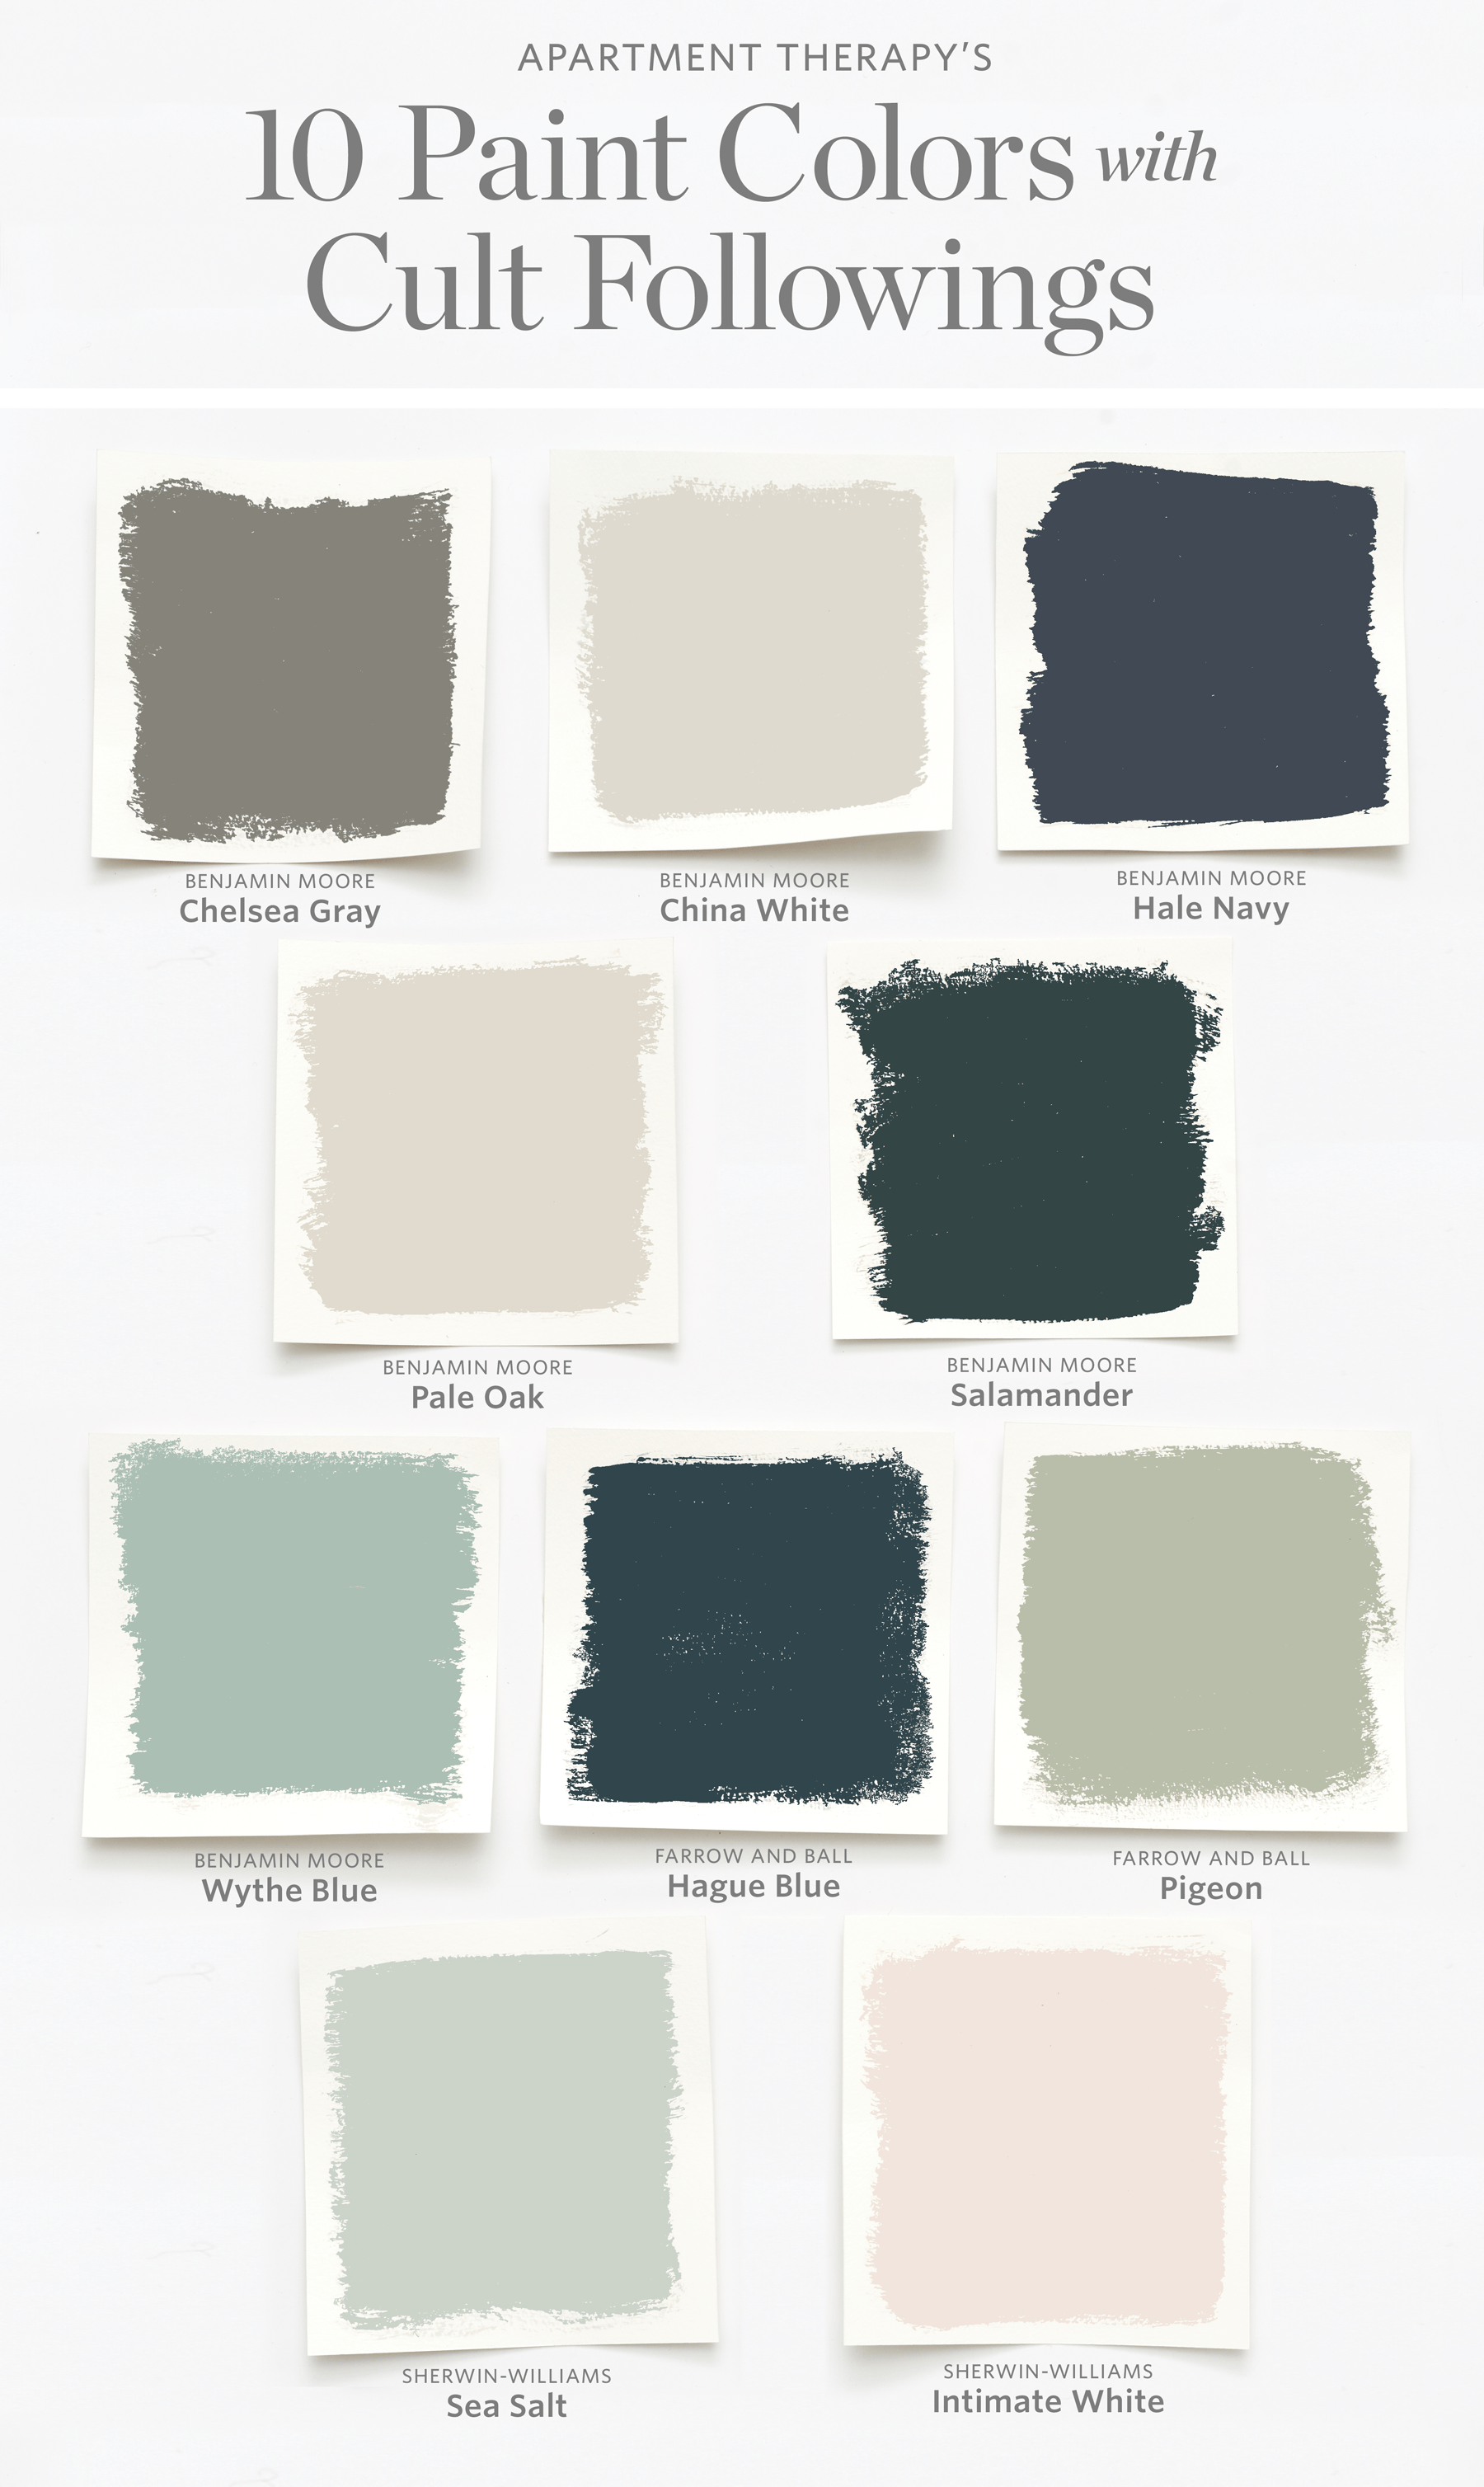 Benjamin Moore Bedroom Colors The Best Paint Colors With Cult Followings Apartment Therapy